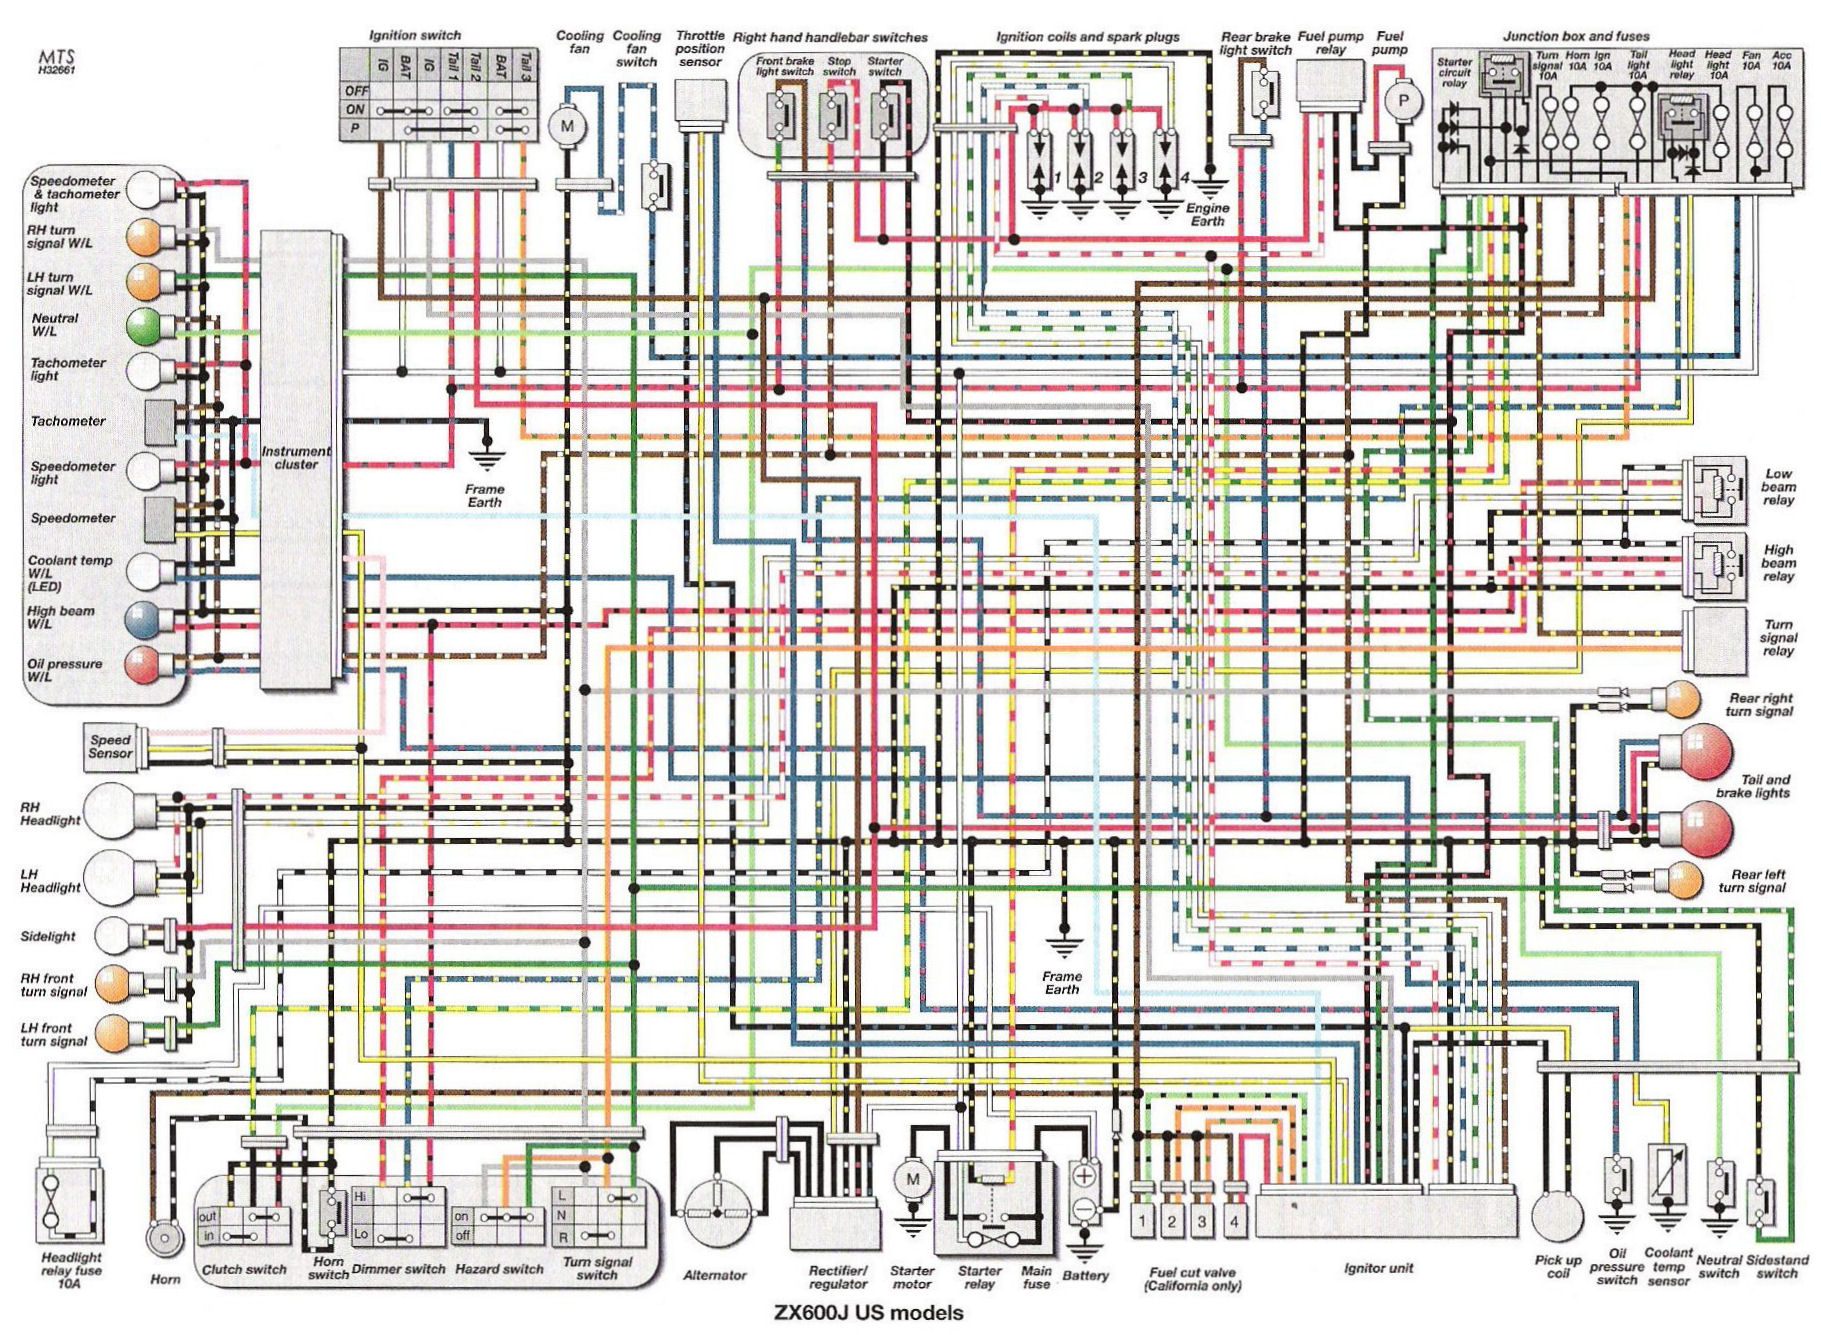 2004 gsxr 600 headlight wiring diagram fantastic suzuki gsx r 600 wire diagram contemporary  [ 1821 x 1335 Pixel ]